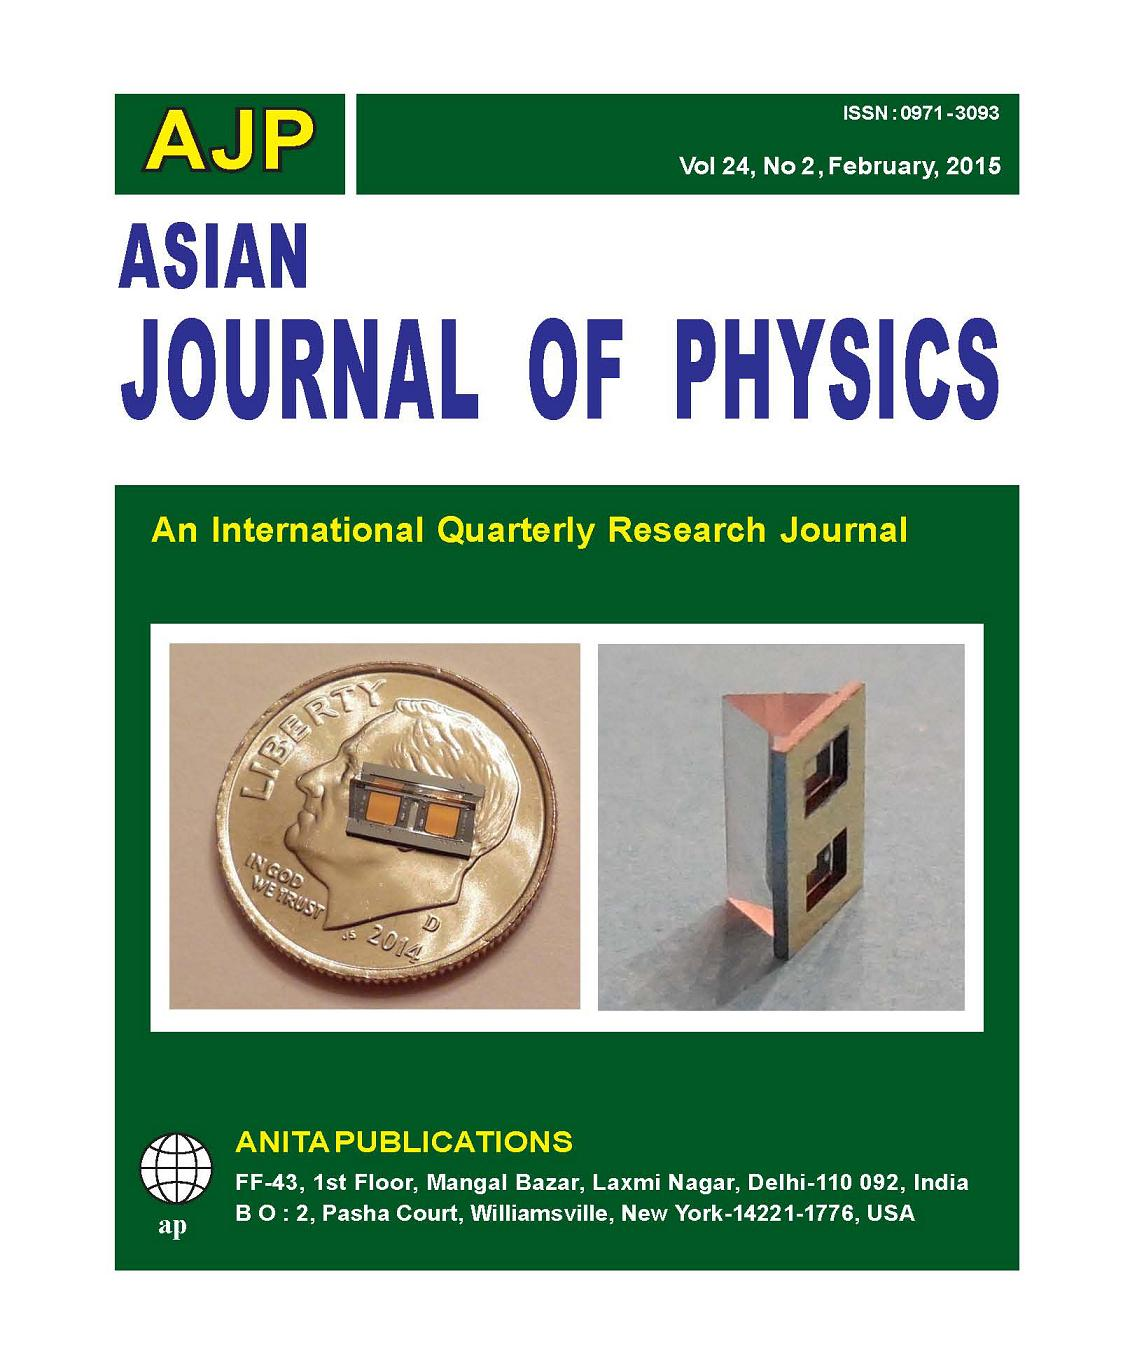 AJP Vol 24 no 2,2015